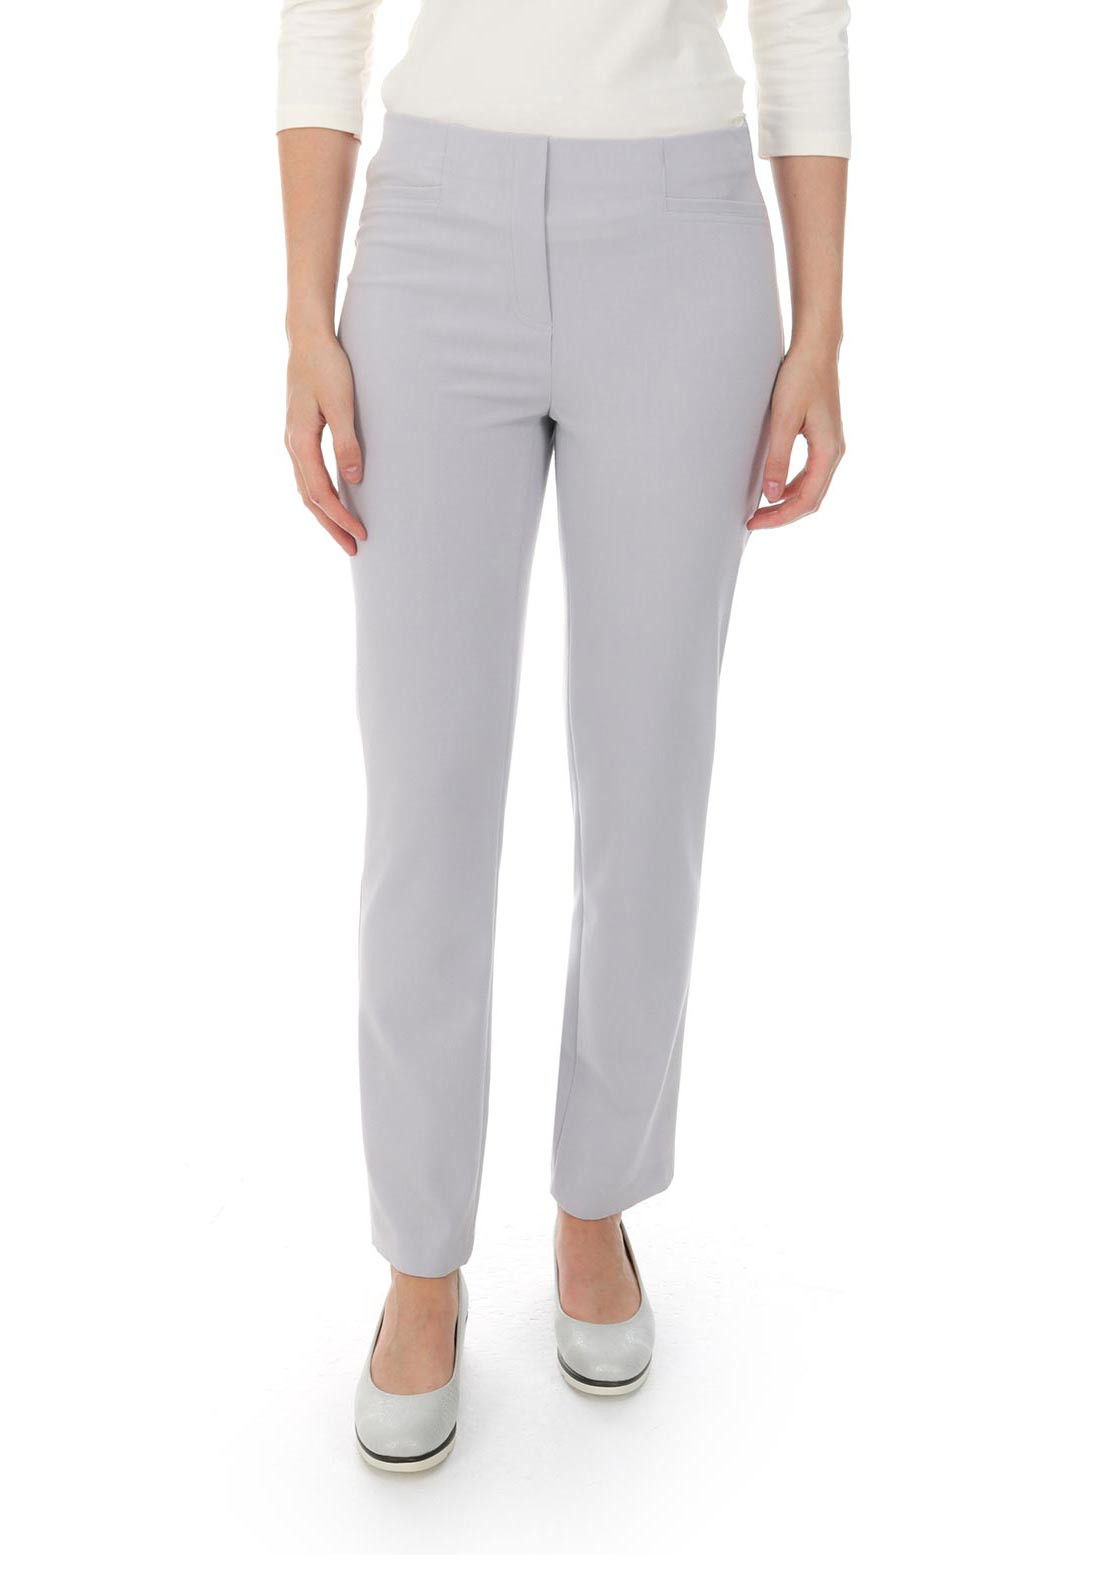 Robell Jacklyn Slim Fit Trousers, Pale Grey